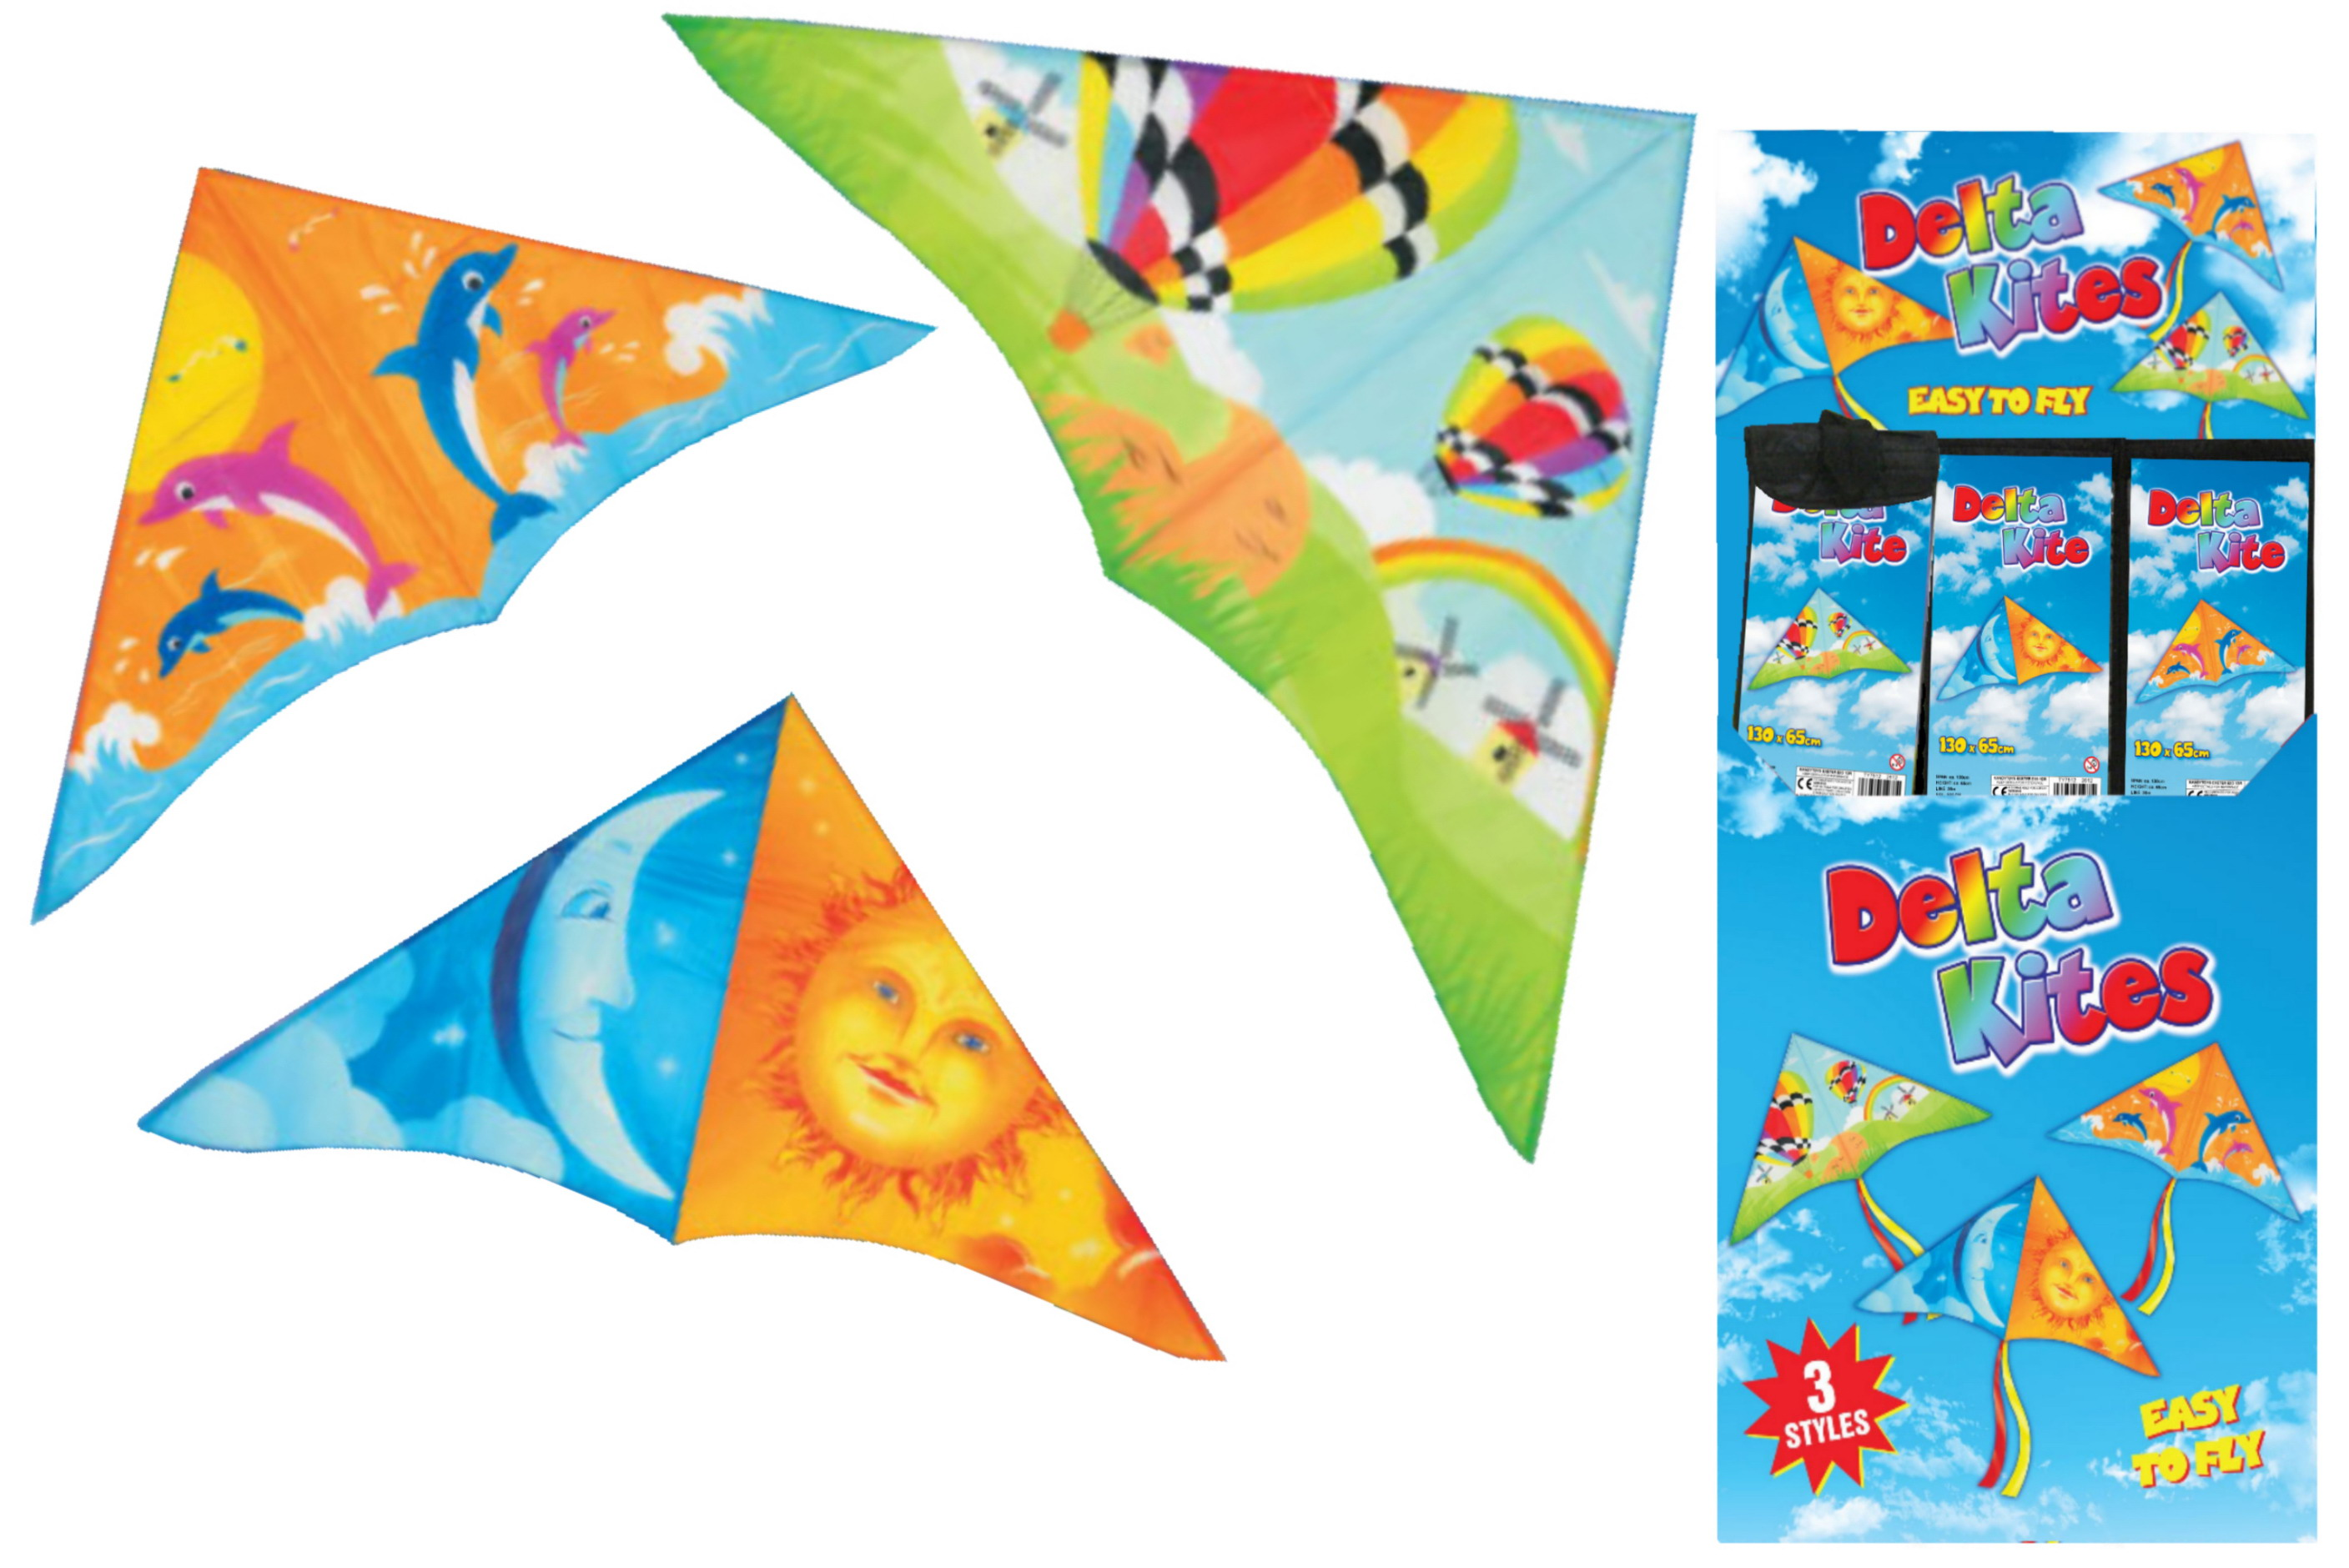 130cm x 65cm Delta Kite In Display Box - 3 Assorted